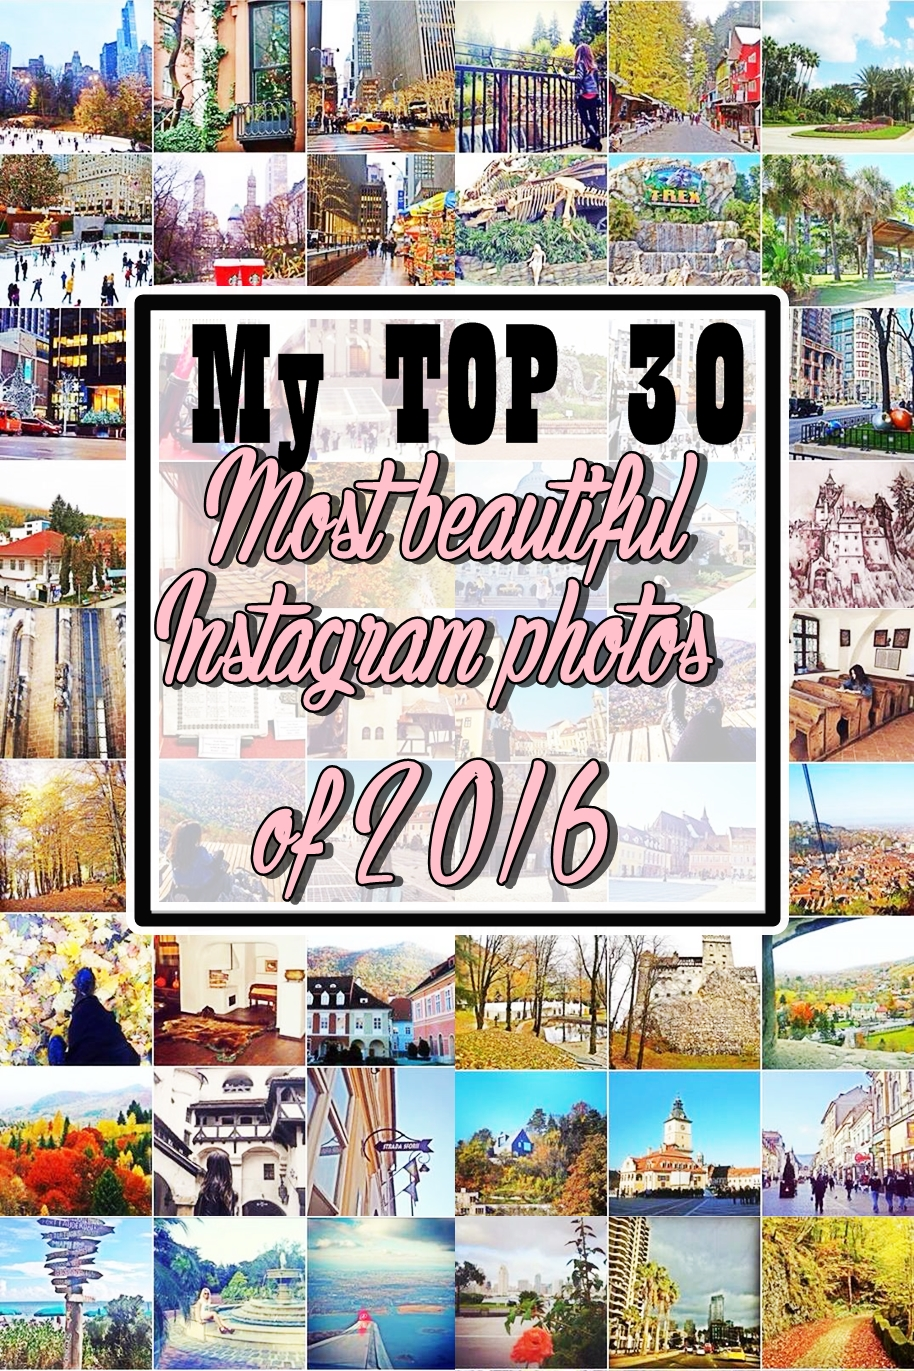 My top 30 most beautiful photos on Instagram